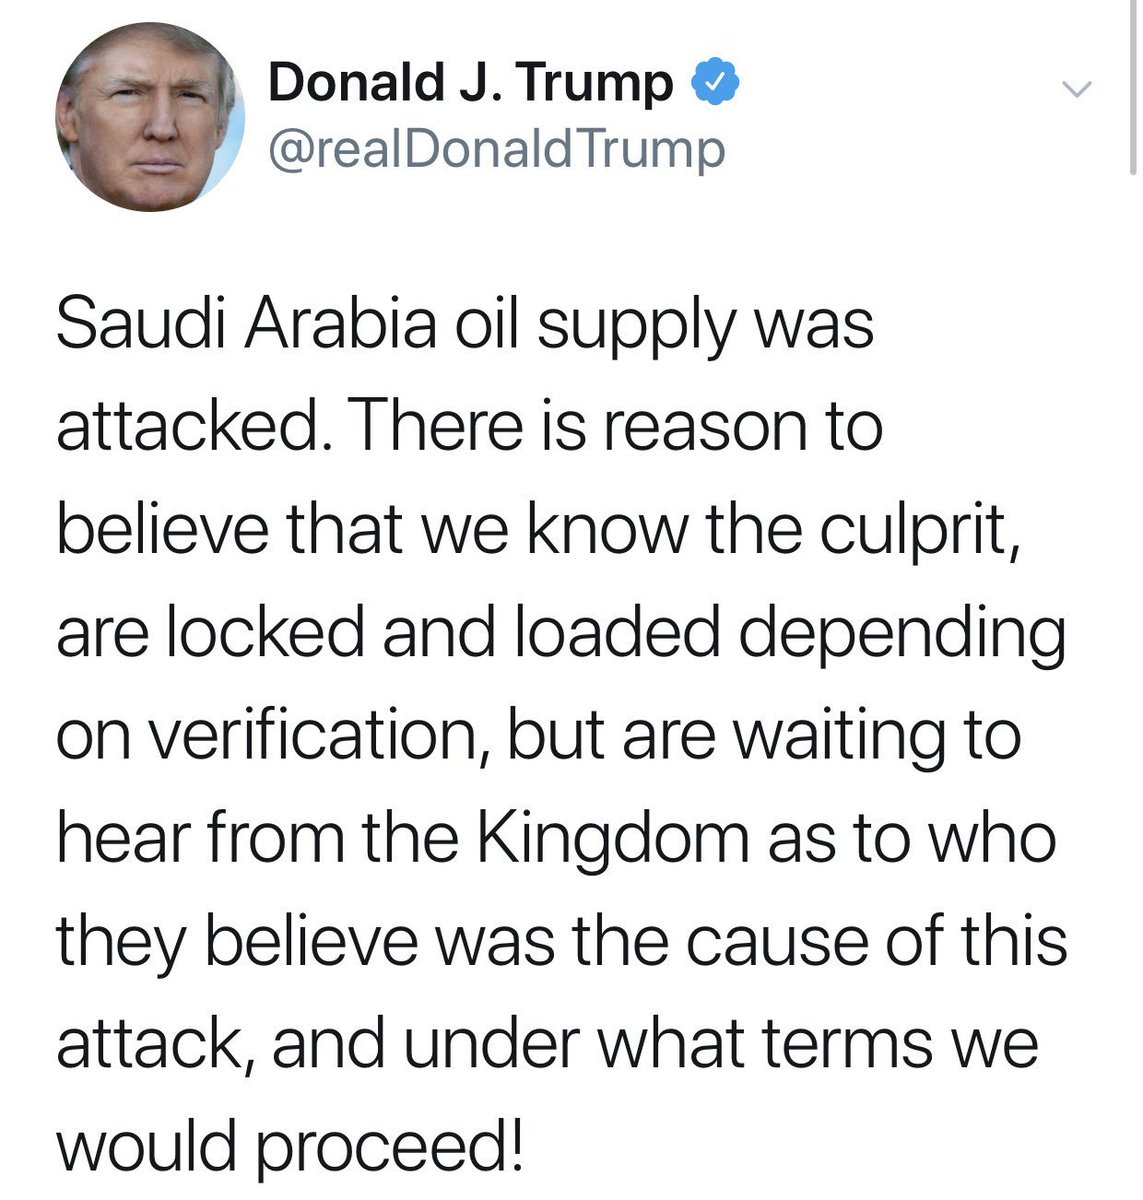 """Wait a minute . . . Trump is """"locked and loaded"""" and waiting to hear from the Kingdom"""" to be told """"under what terms to proceed""""? So now America is taking orders from Saudi Arabia AS WELL AS Russia/Putin. Hard to keep track . . . https://t.co/CFjBpy8C87"""